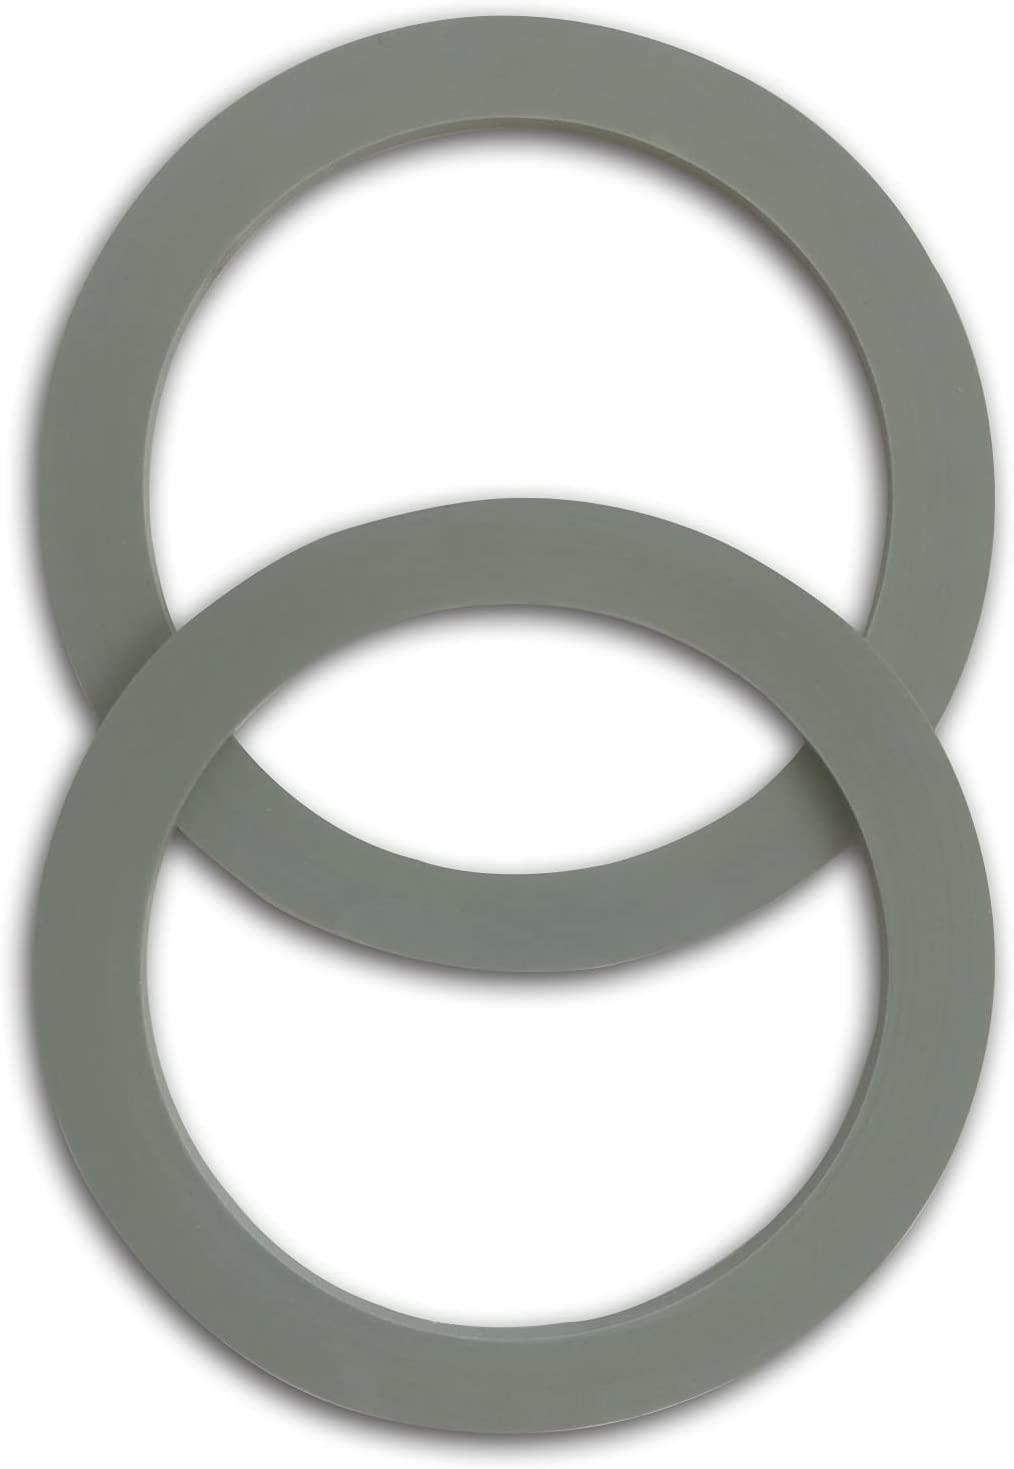 (2 Pack) Grey Blender Gasket, Compatible with Osterizer and Oster Blender Replacement Parts (2)